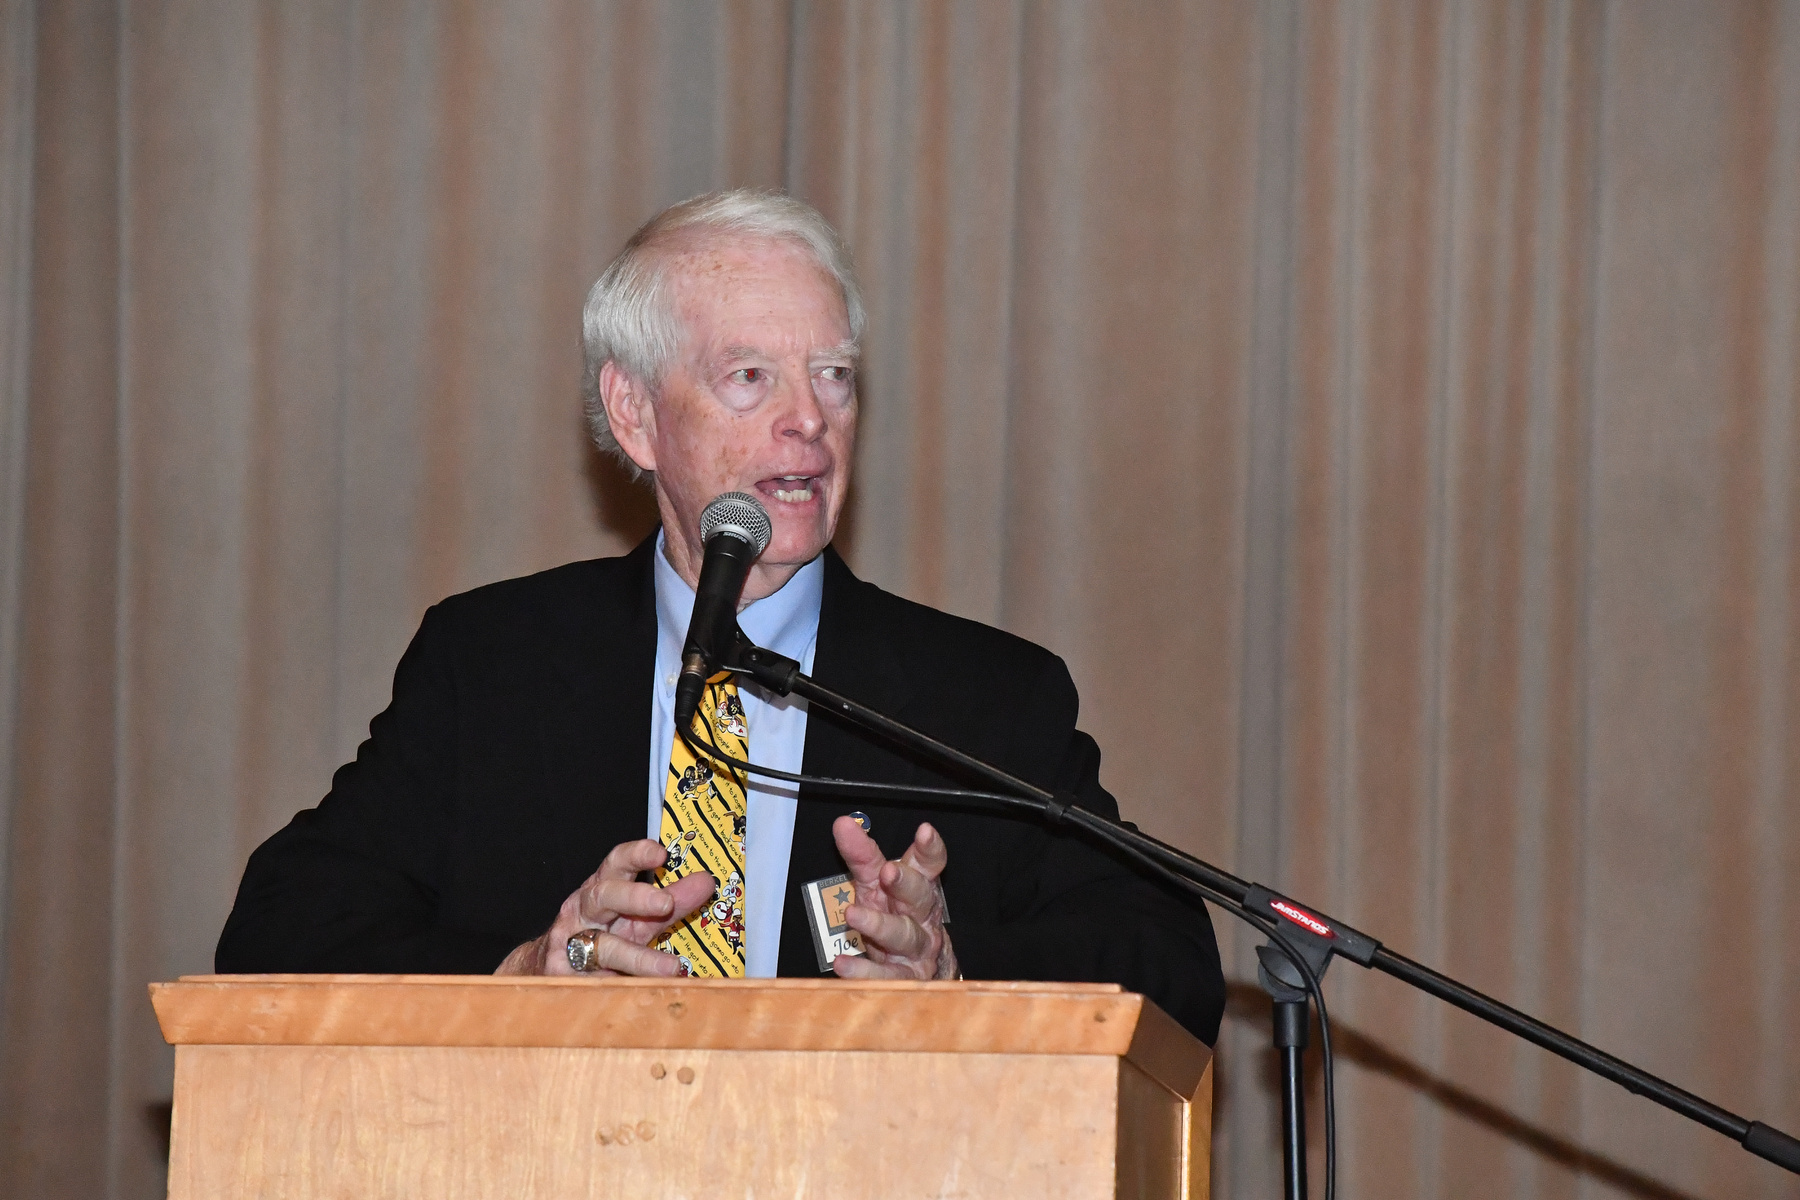 2018 Cal Hall of Fame ceremony _20181026_212157_MarcusE-(ZF-0861-35620-1-197).jpg